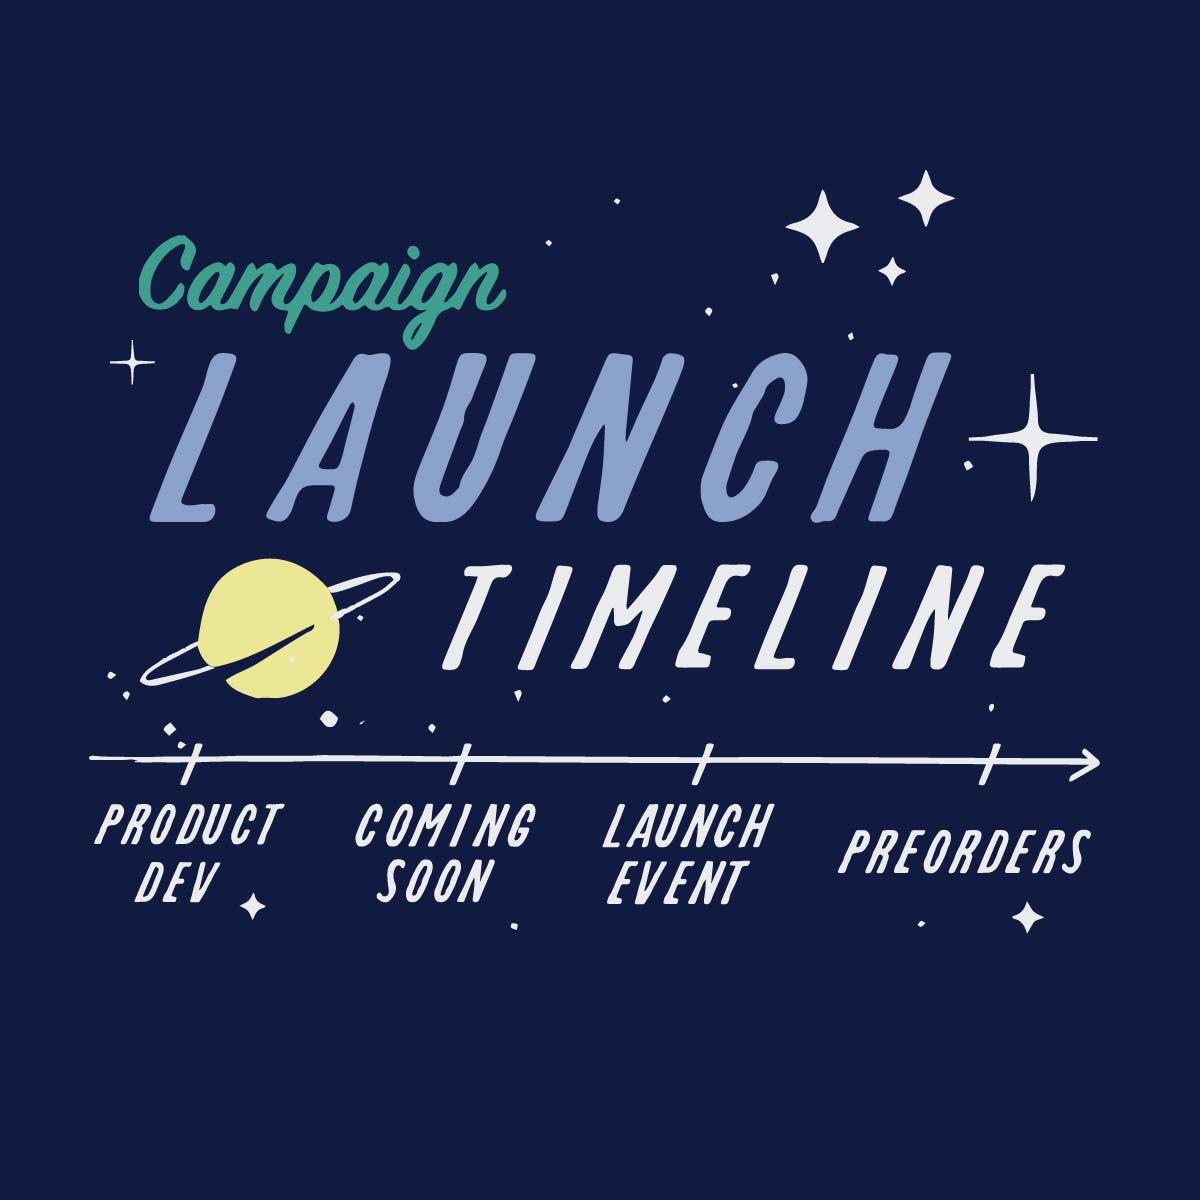 An illustration showing the timeline for launching a product.